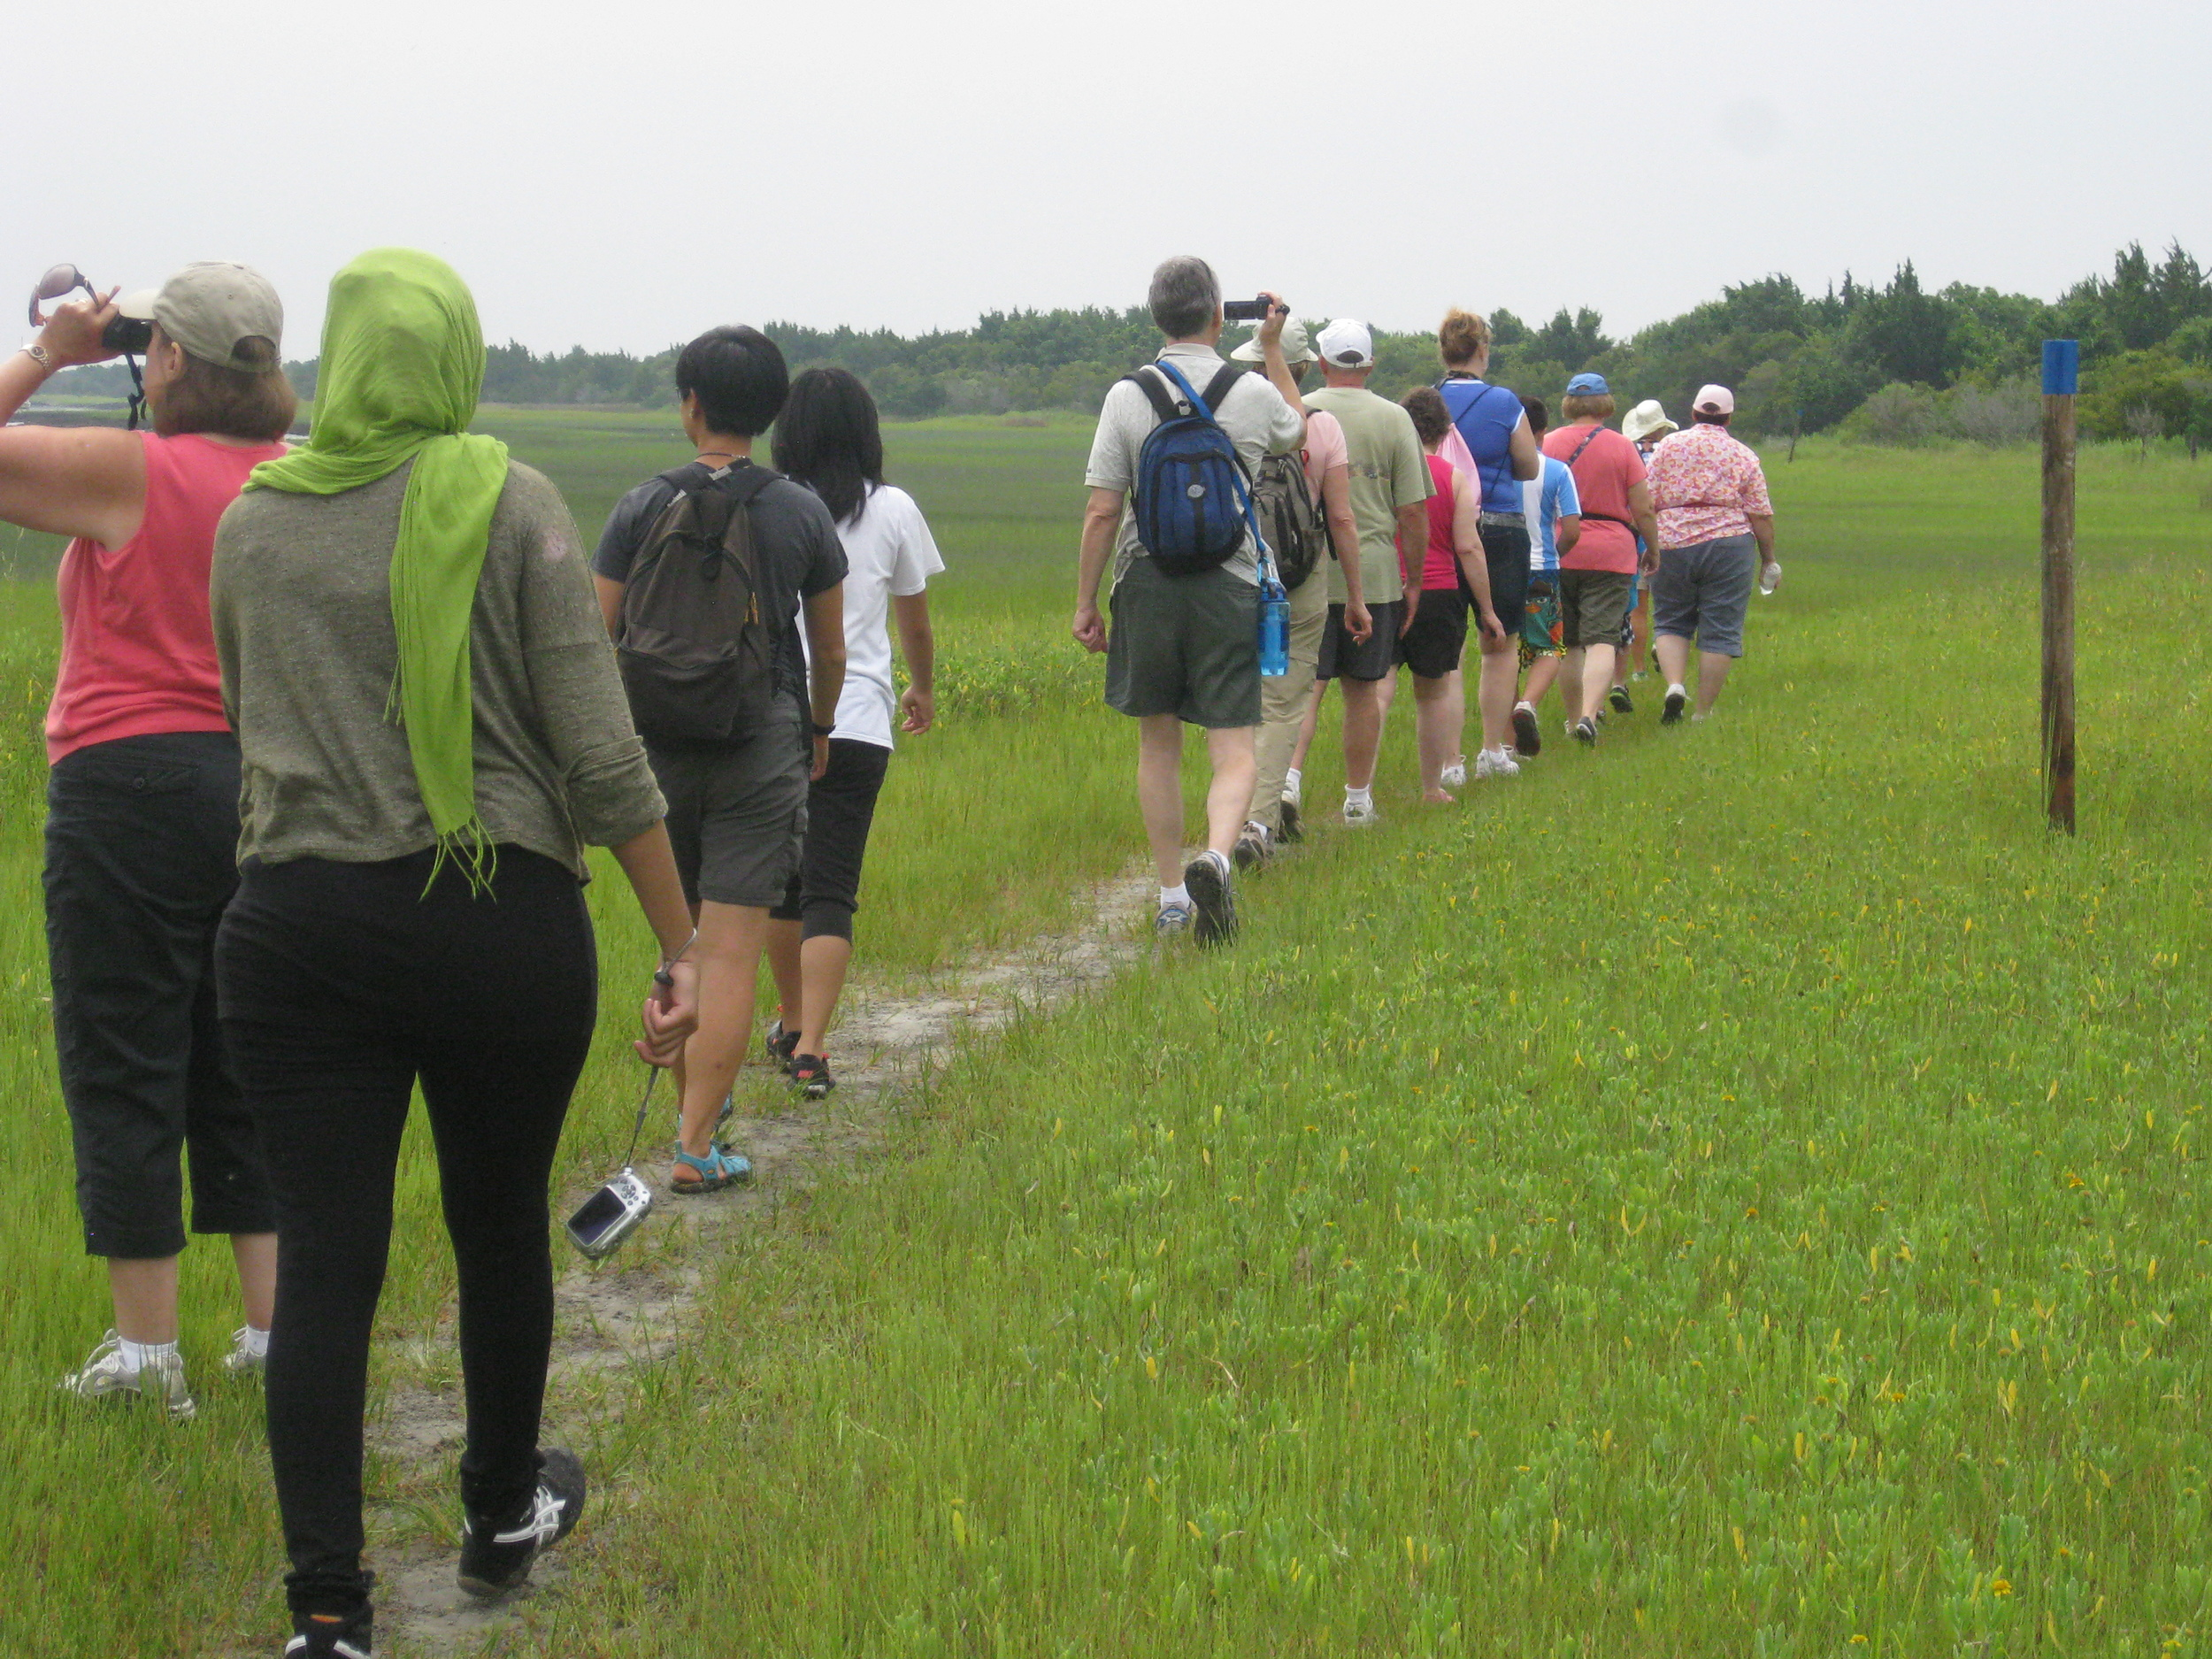 Field trip with other visitors to the Rachel Carson Estuary Reserve, 2013.